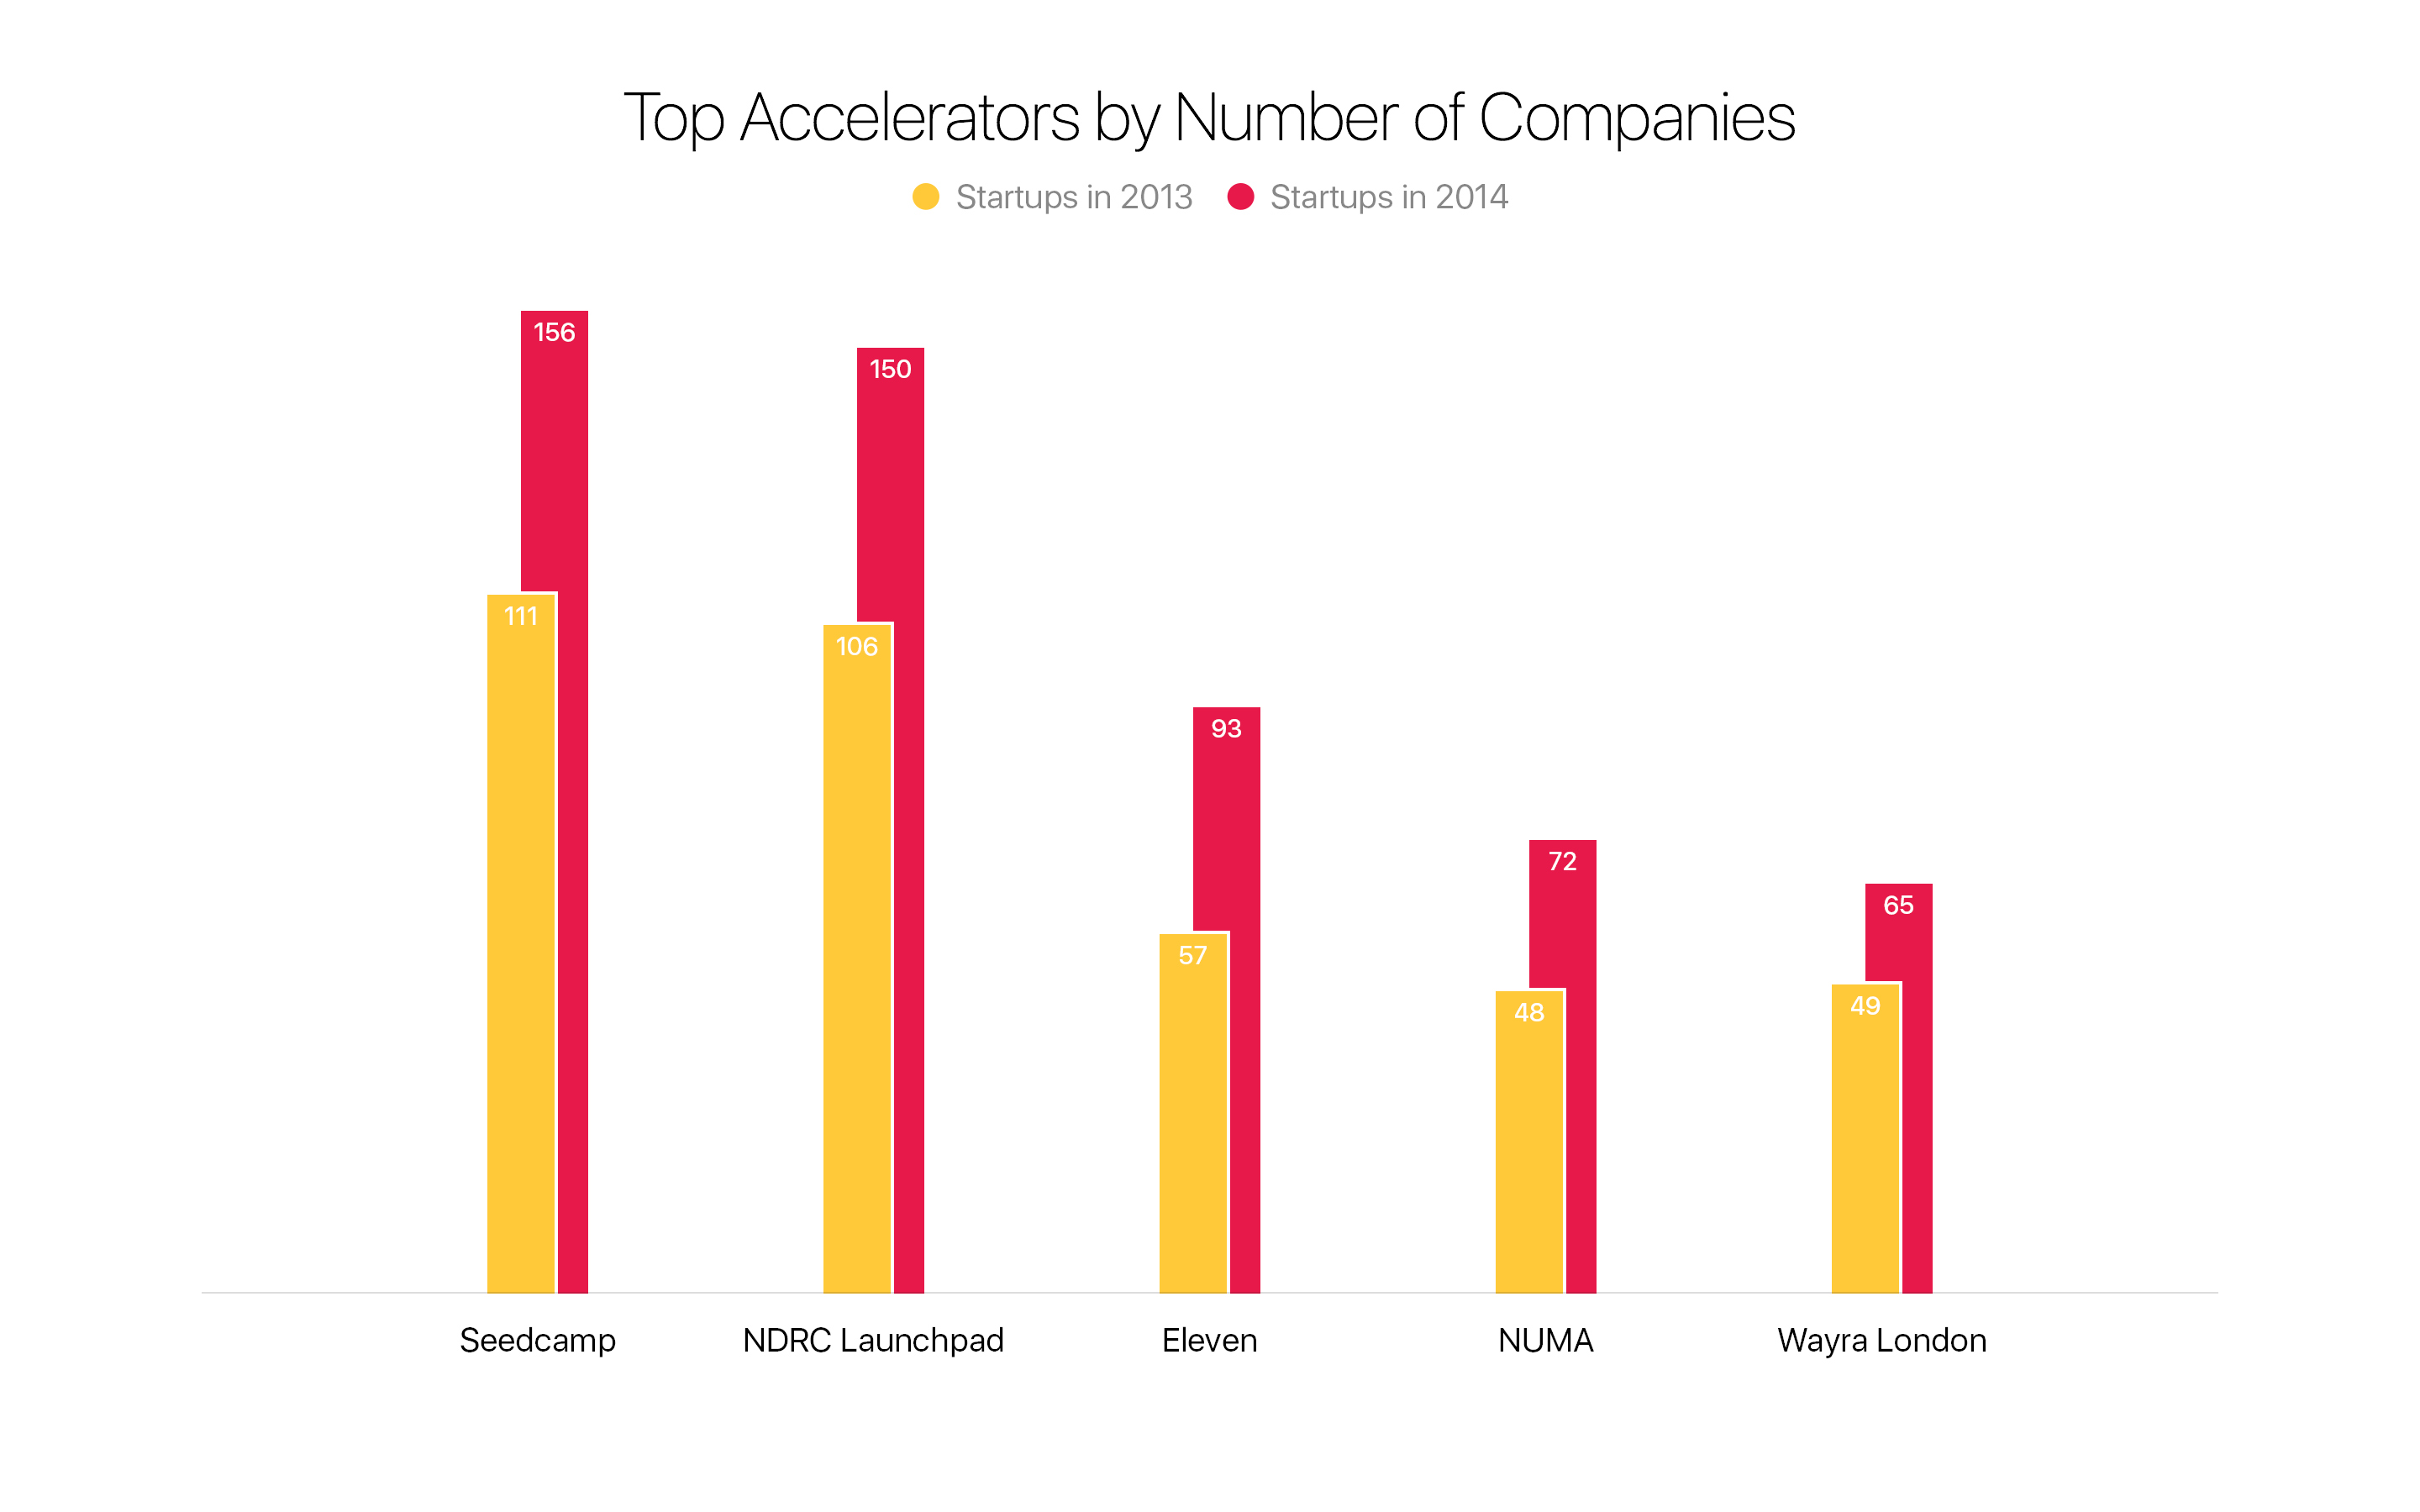 Top Accelerators by Number of Companies